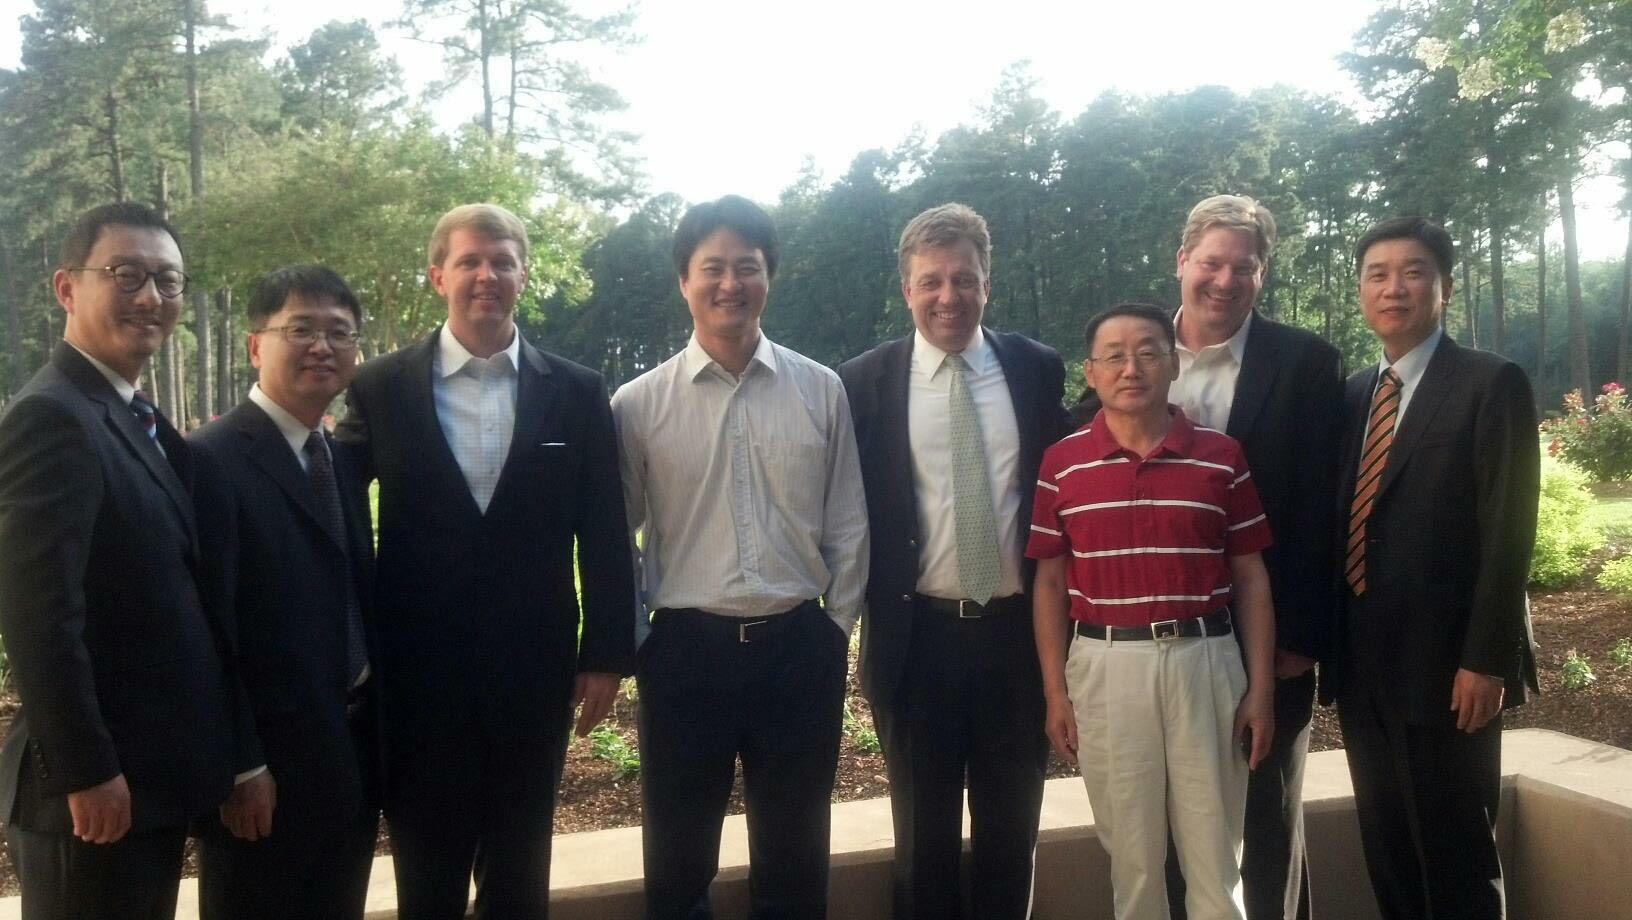 Chris Kim JD and KH Lee JD with Chris O'Conner, Director of Duke Heart University at Washington Duke Hotel leadership from Samsung/LG